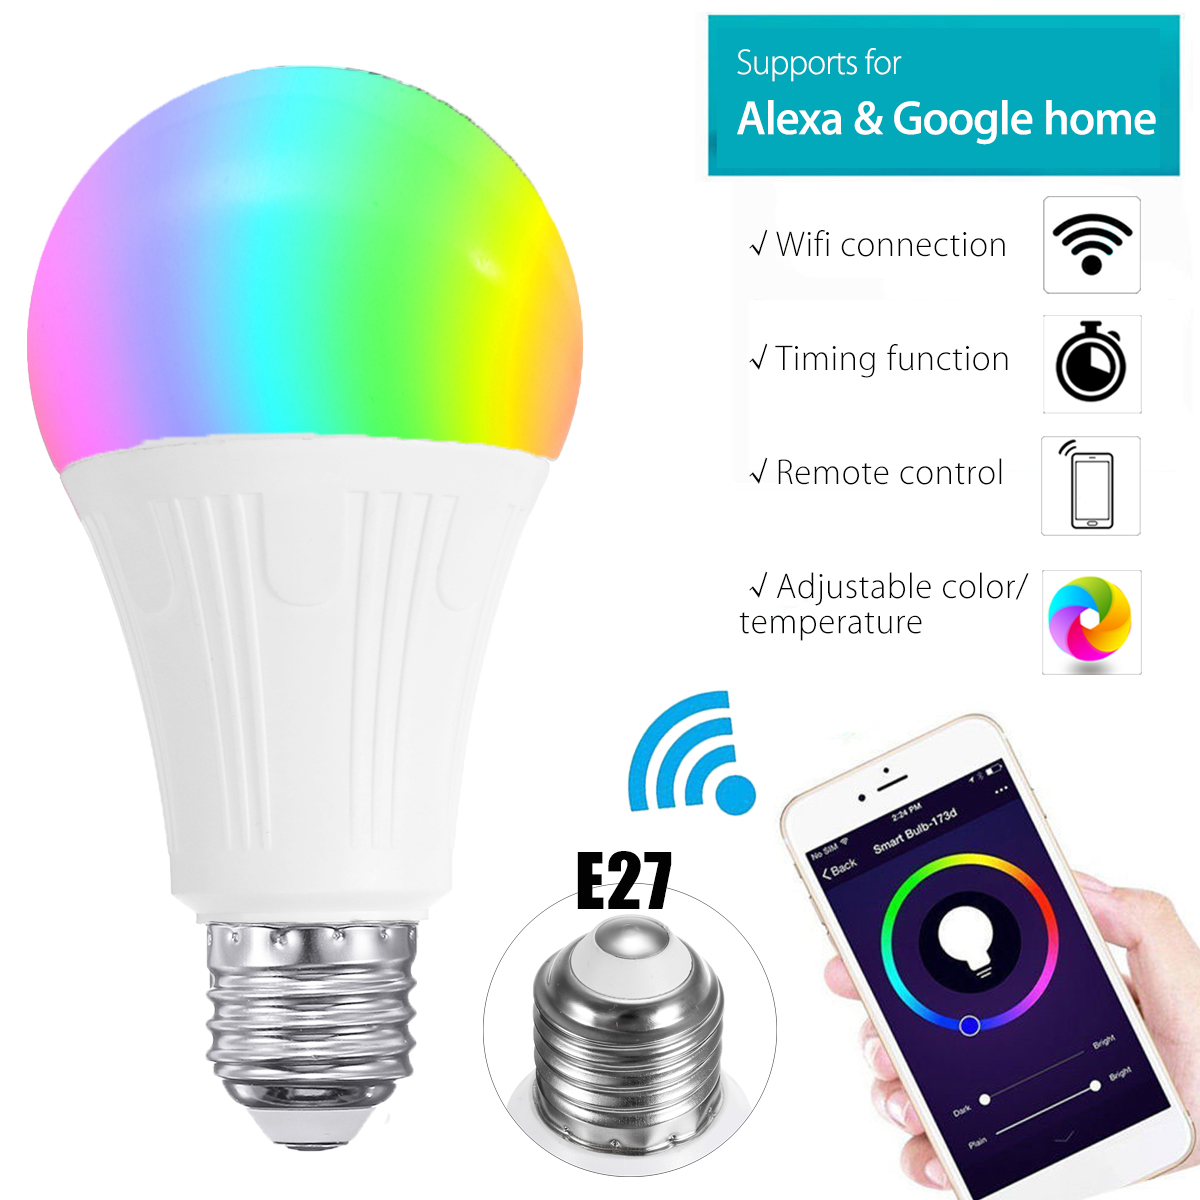 Smuxi Magic E27 Wireless WiFi APP RC Smart Bulb Lamp 7W Light Color Change Dimmable RGB For Echo Alexa Google Home Hotel small motherboard computer cases server 1 rtl8111dl onboard nic gigabit lan wake on lan or wifi network